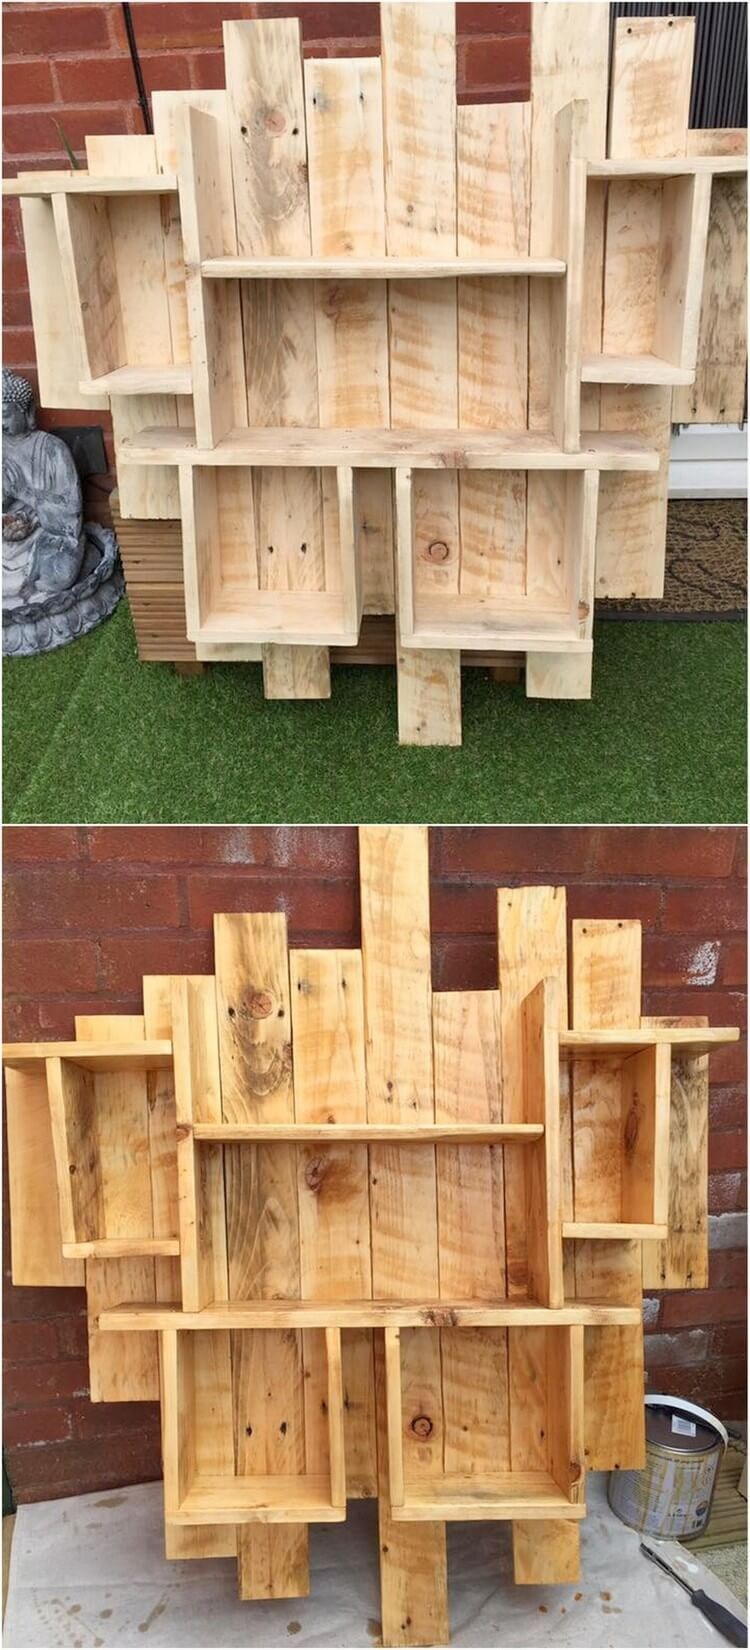 Creative Wood Pallet Projects That Everyone Can Afford Wood Pallet Projects Are Afford Creat In 2020 Pallet Wood Shelves Wooden Pallet Projects Pallet Shelves Diy